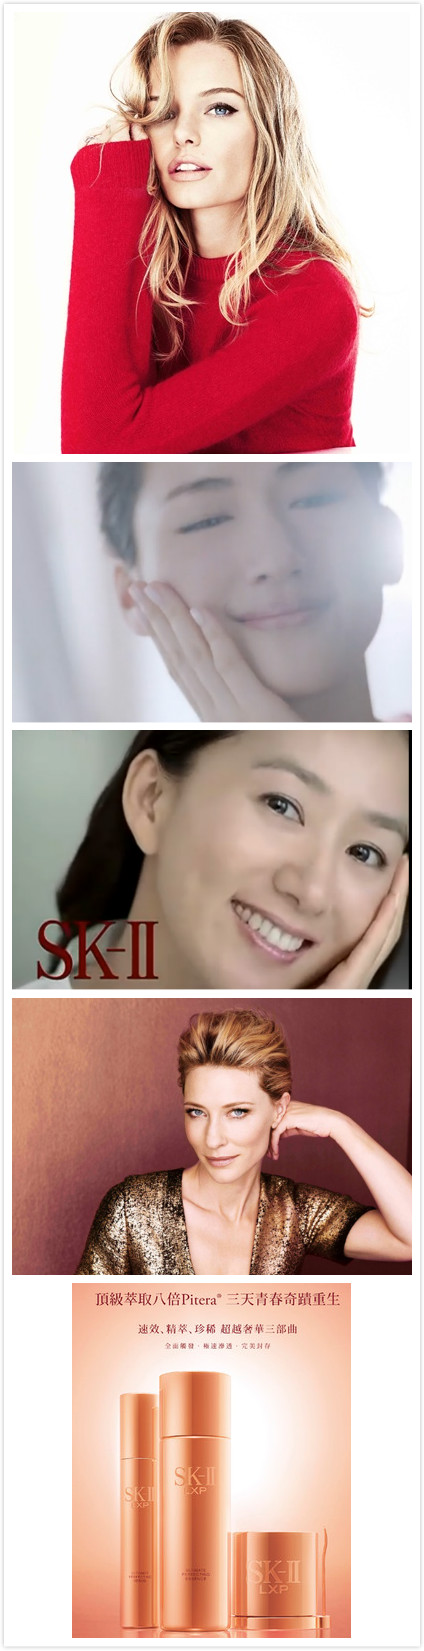 SK-II 's 3 Masterpices